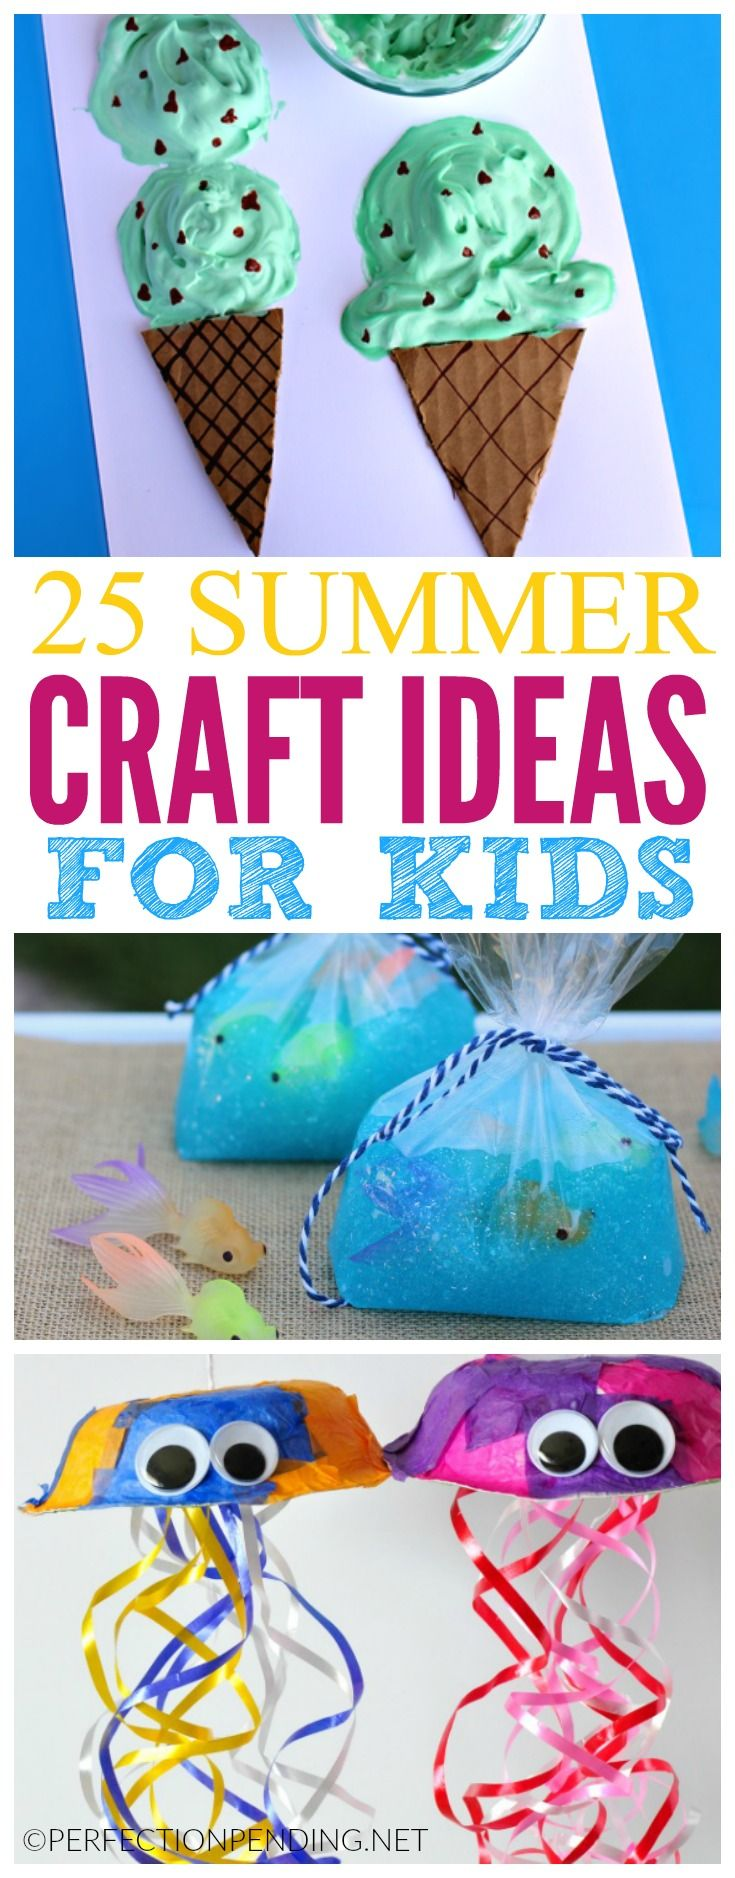 25 summer crafts for kids - Summer Pictures For Kids